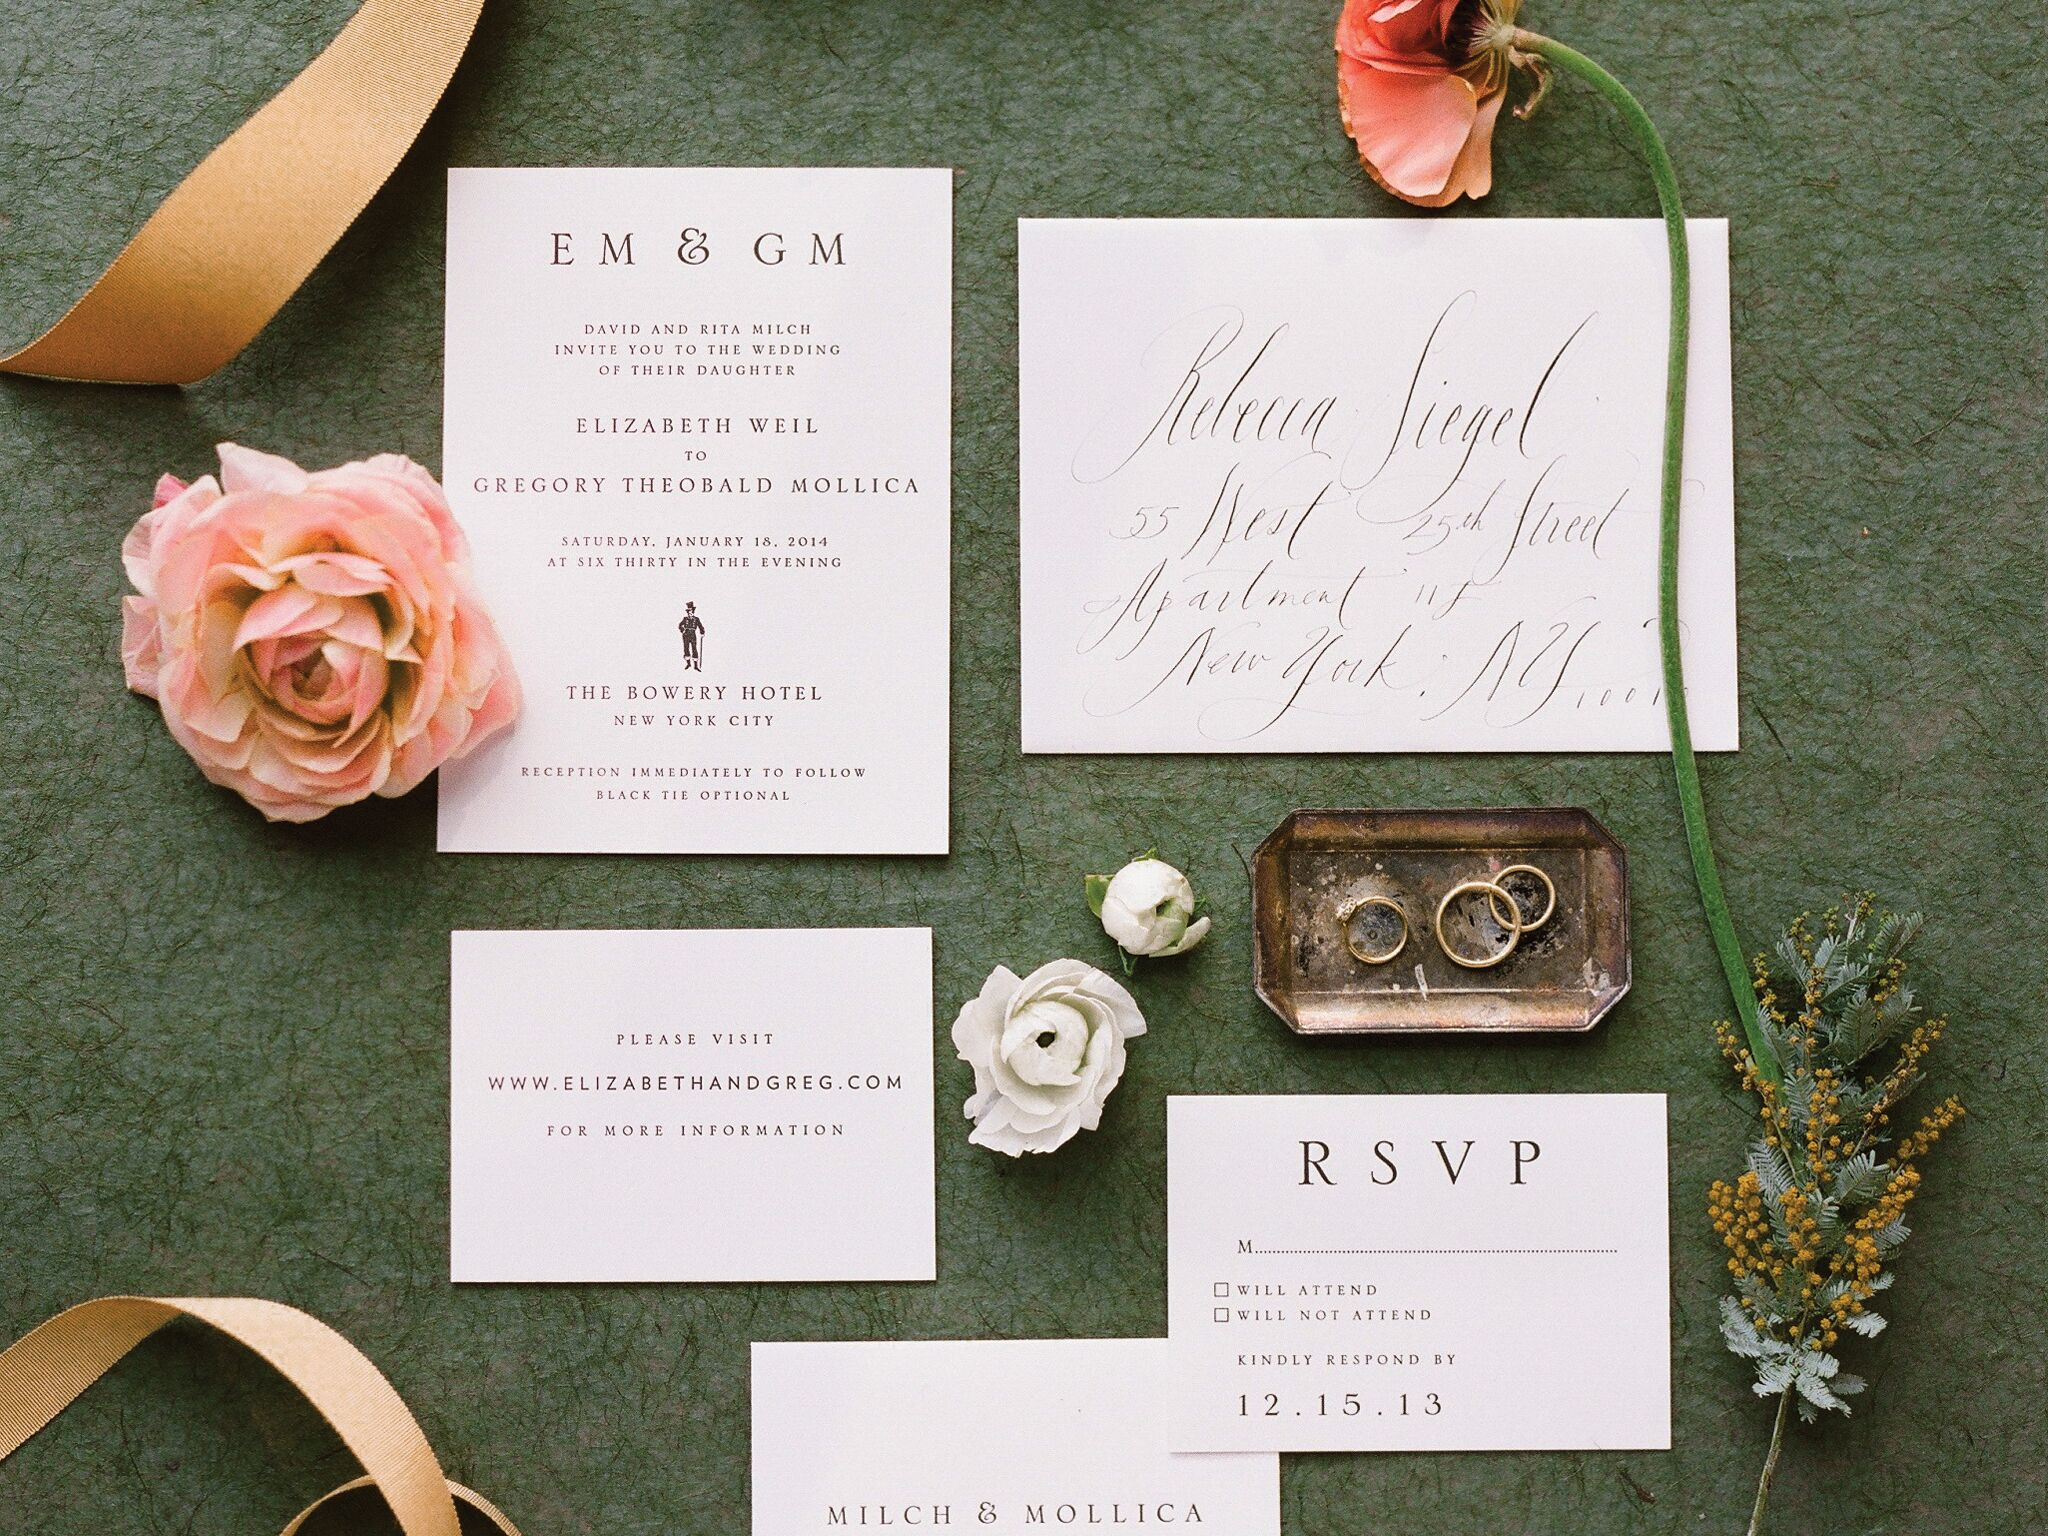 top 10 wedding invitation etiquette questions, Wedding invitations